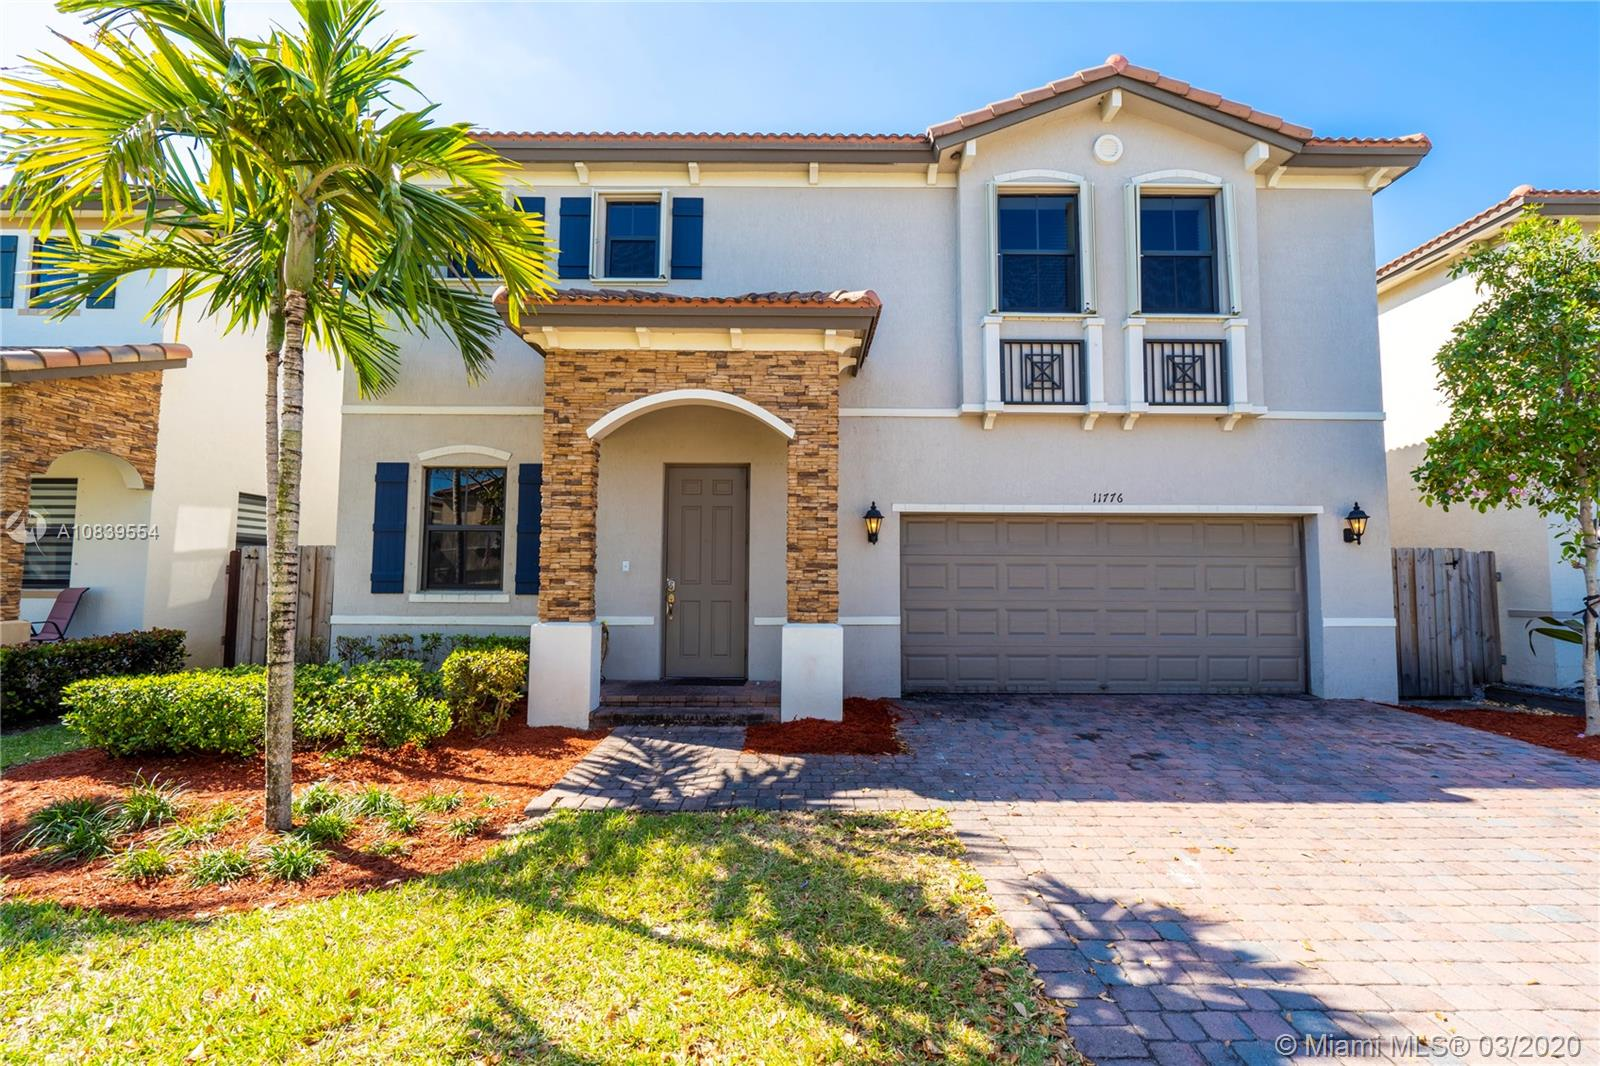 11776 SW 235th St  For Sale A10839554, FL